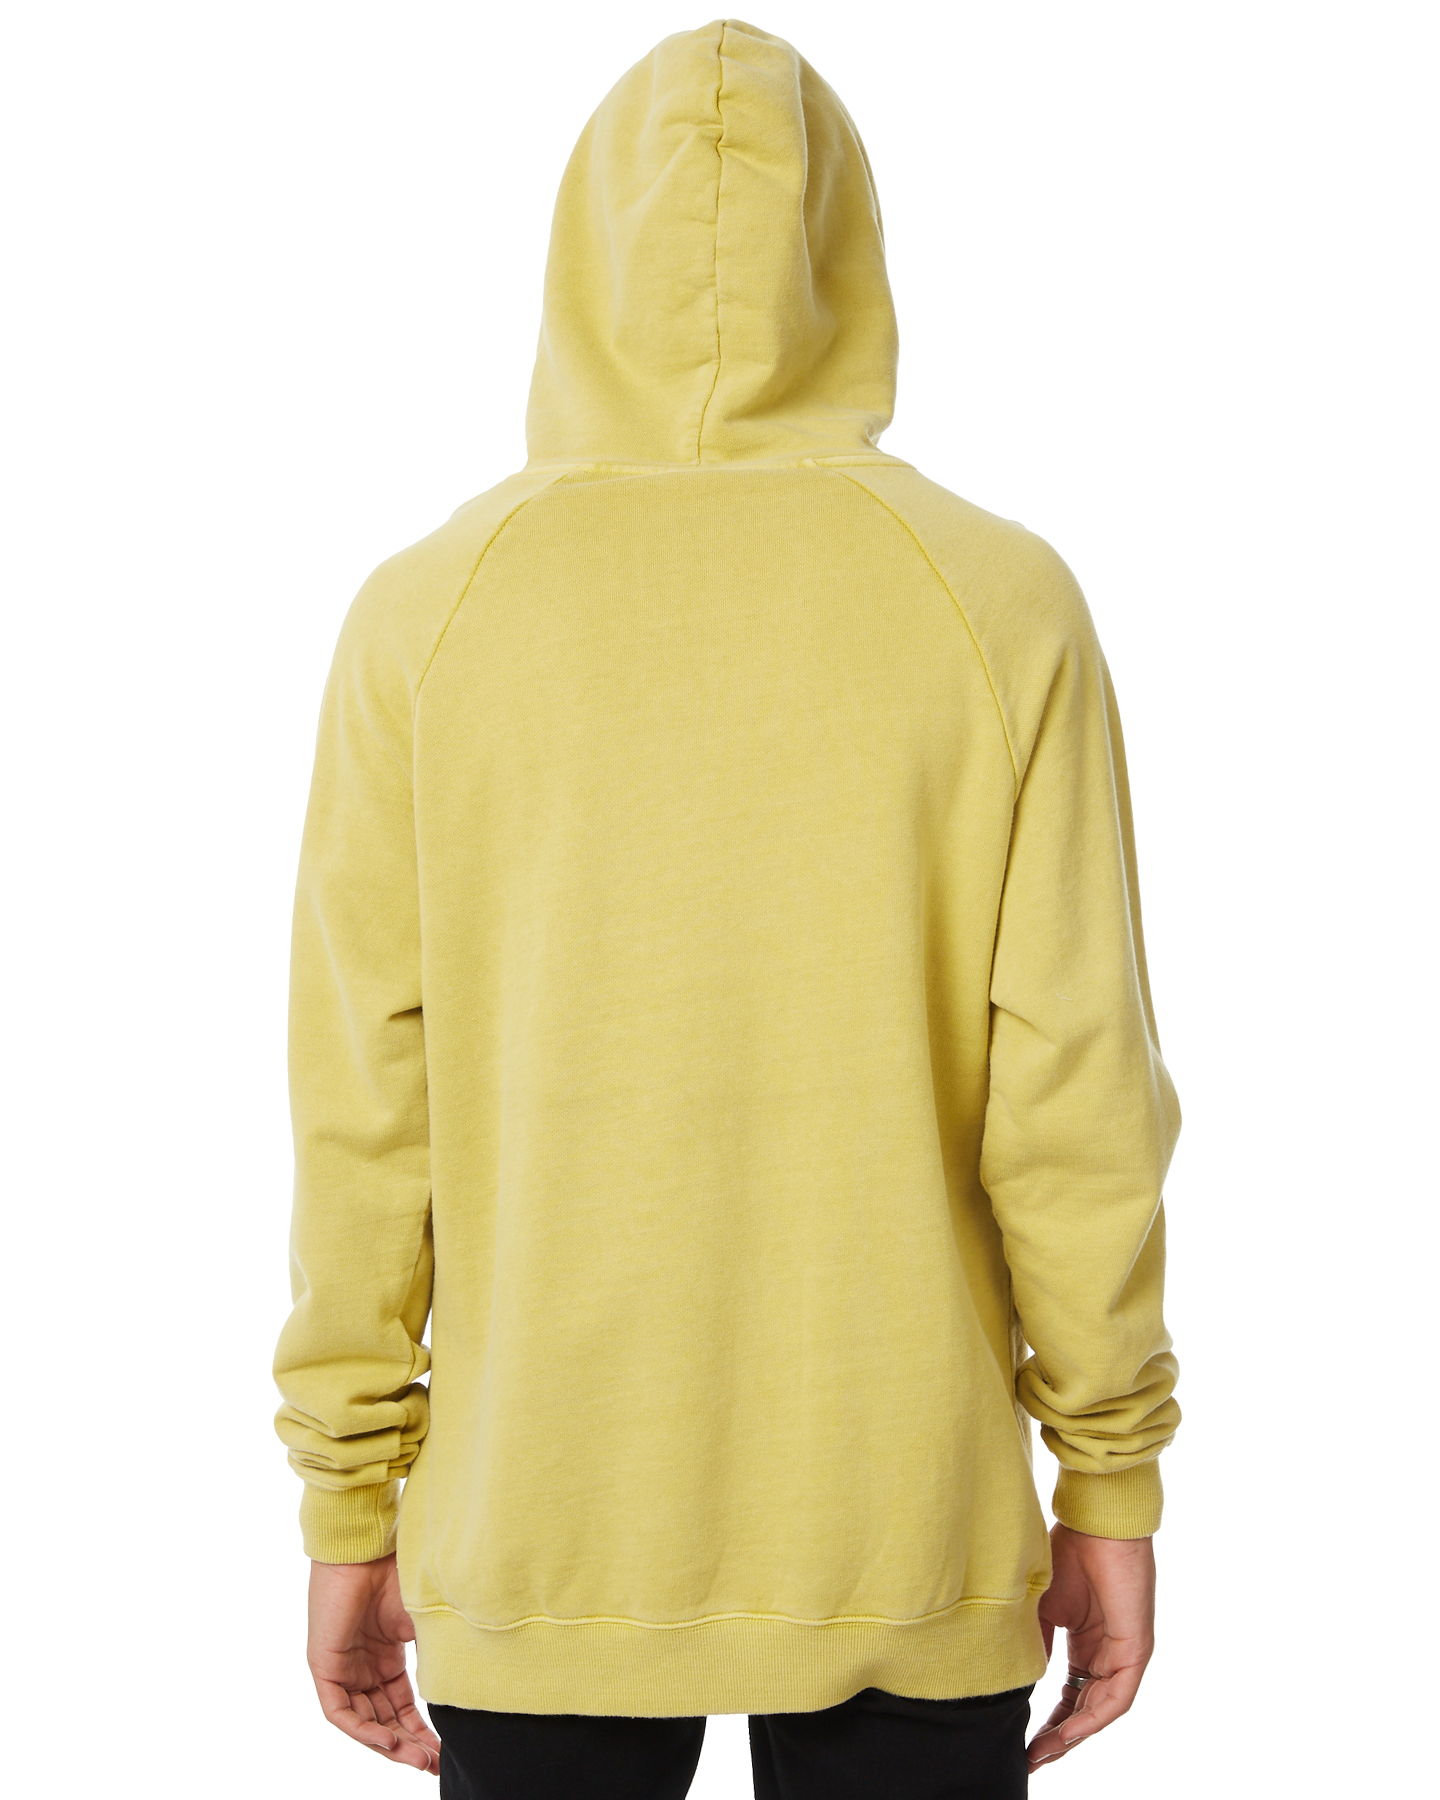 a9080d750 Details about New Insight Men's You Dope Mens Pullover Hood Cotton Yellow